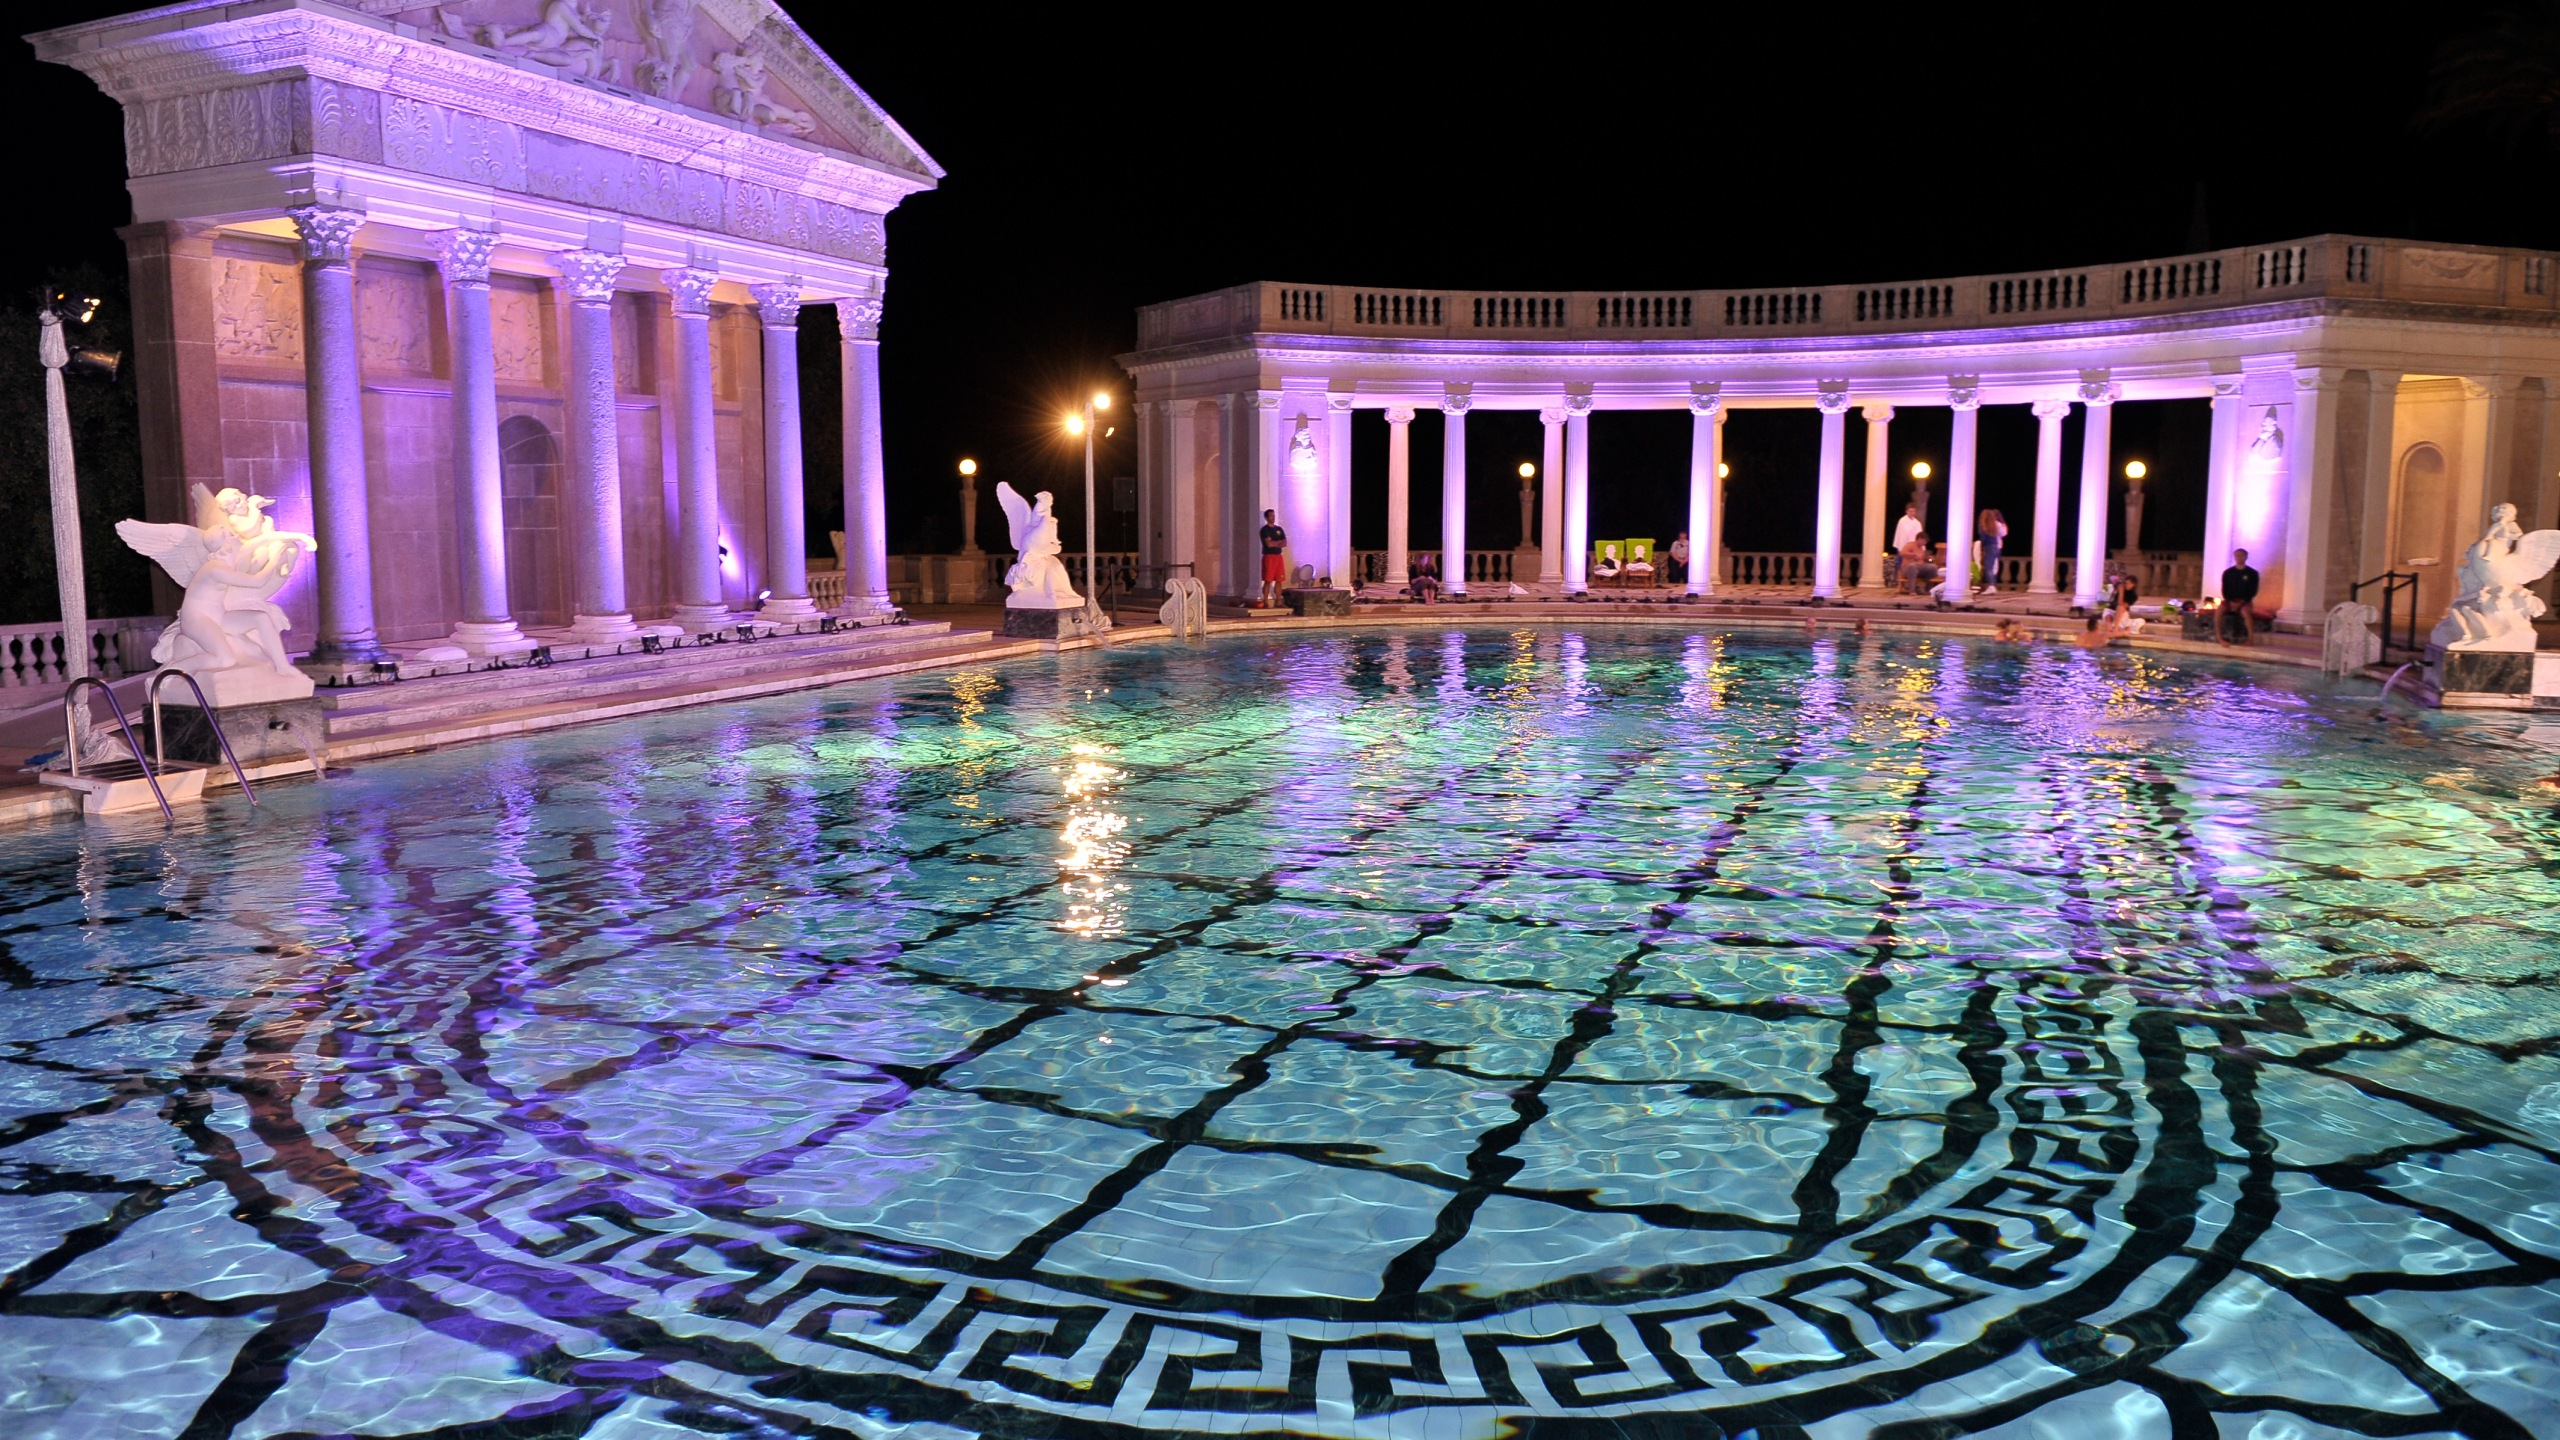 A general view of atmosphere at Best Buddies Challenge: Hearst Castle Neptune Pool Reception at Hearst Castle on Sept. 7, 2013, in San Simeon, California. (Credit: Steve Jennings/Getty Images)